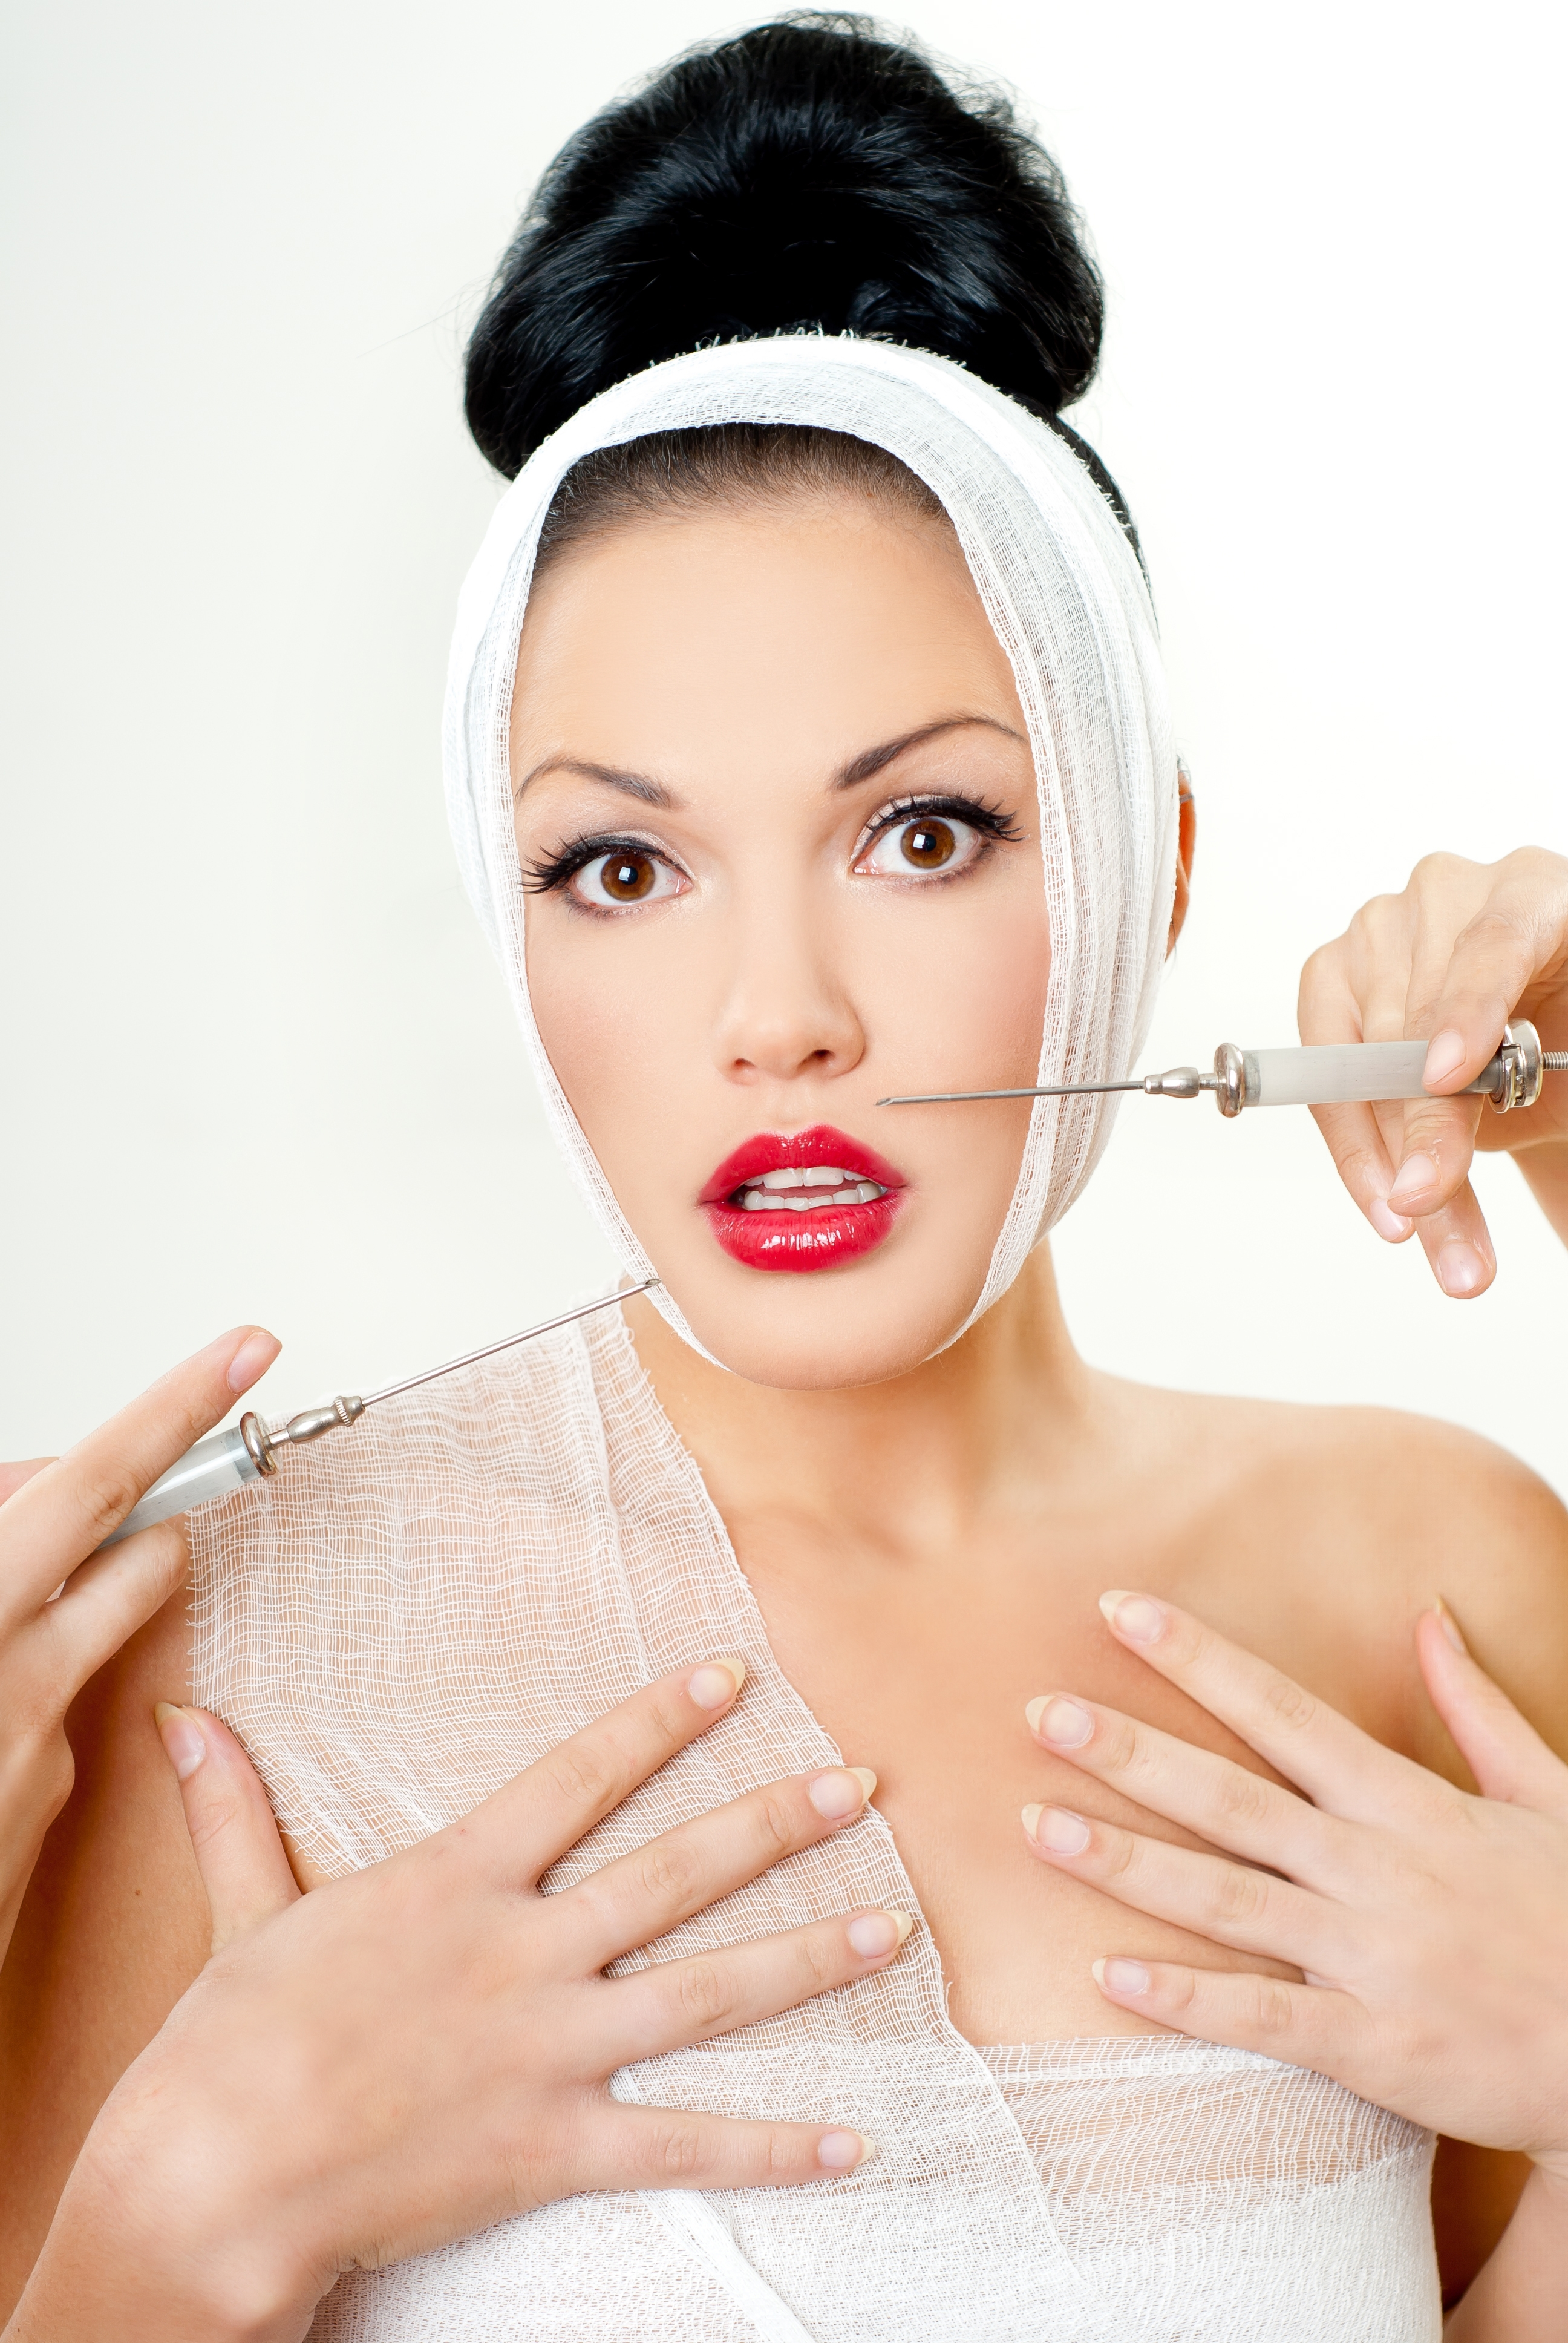 Get Fuller Lips With The PureLift+ RF Non-Invasive Lip Plumping Treatment! 1